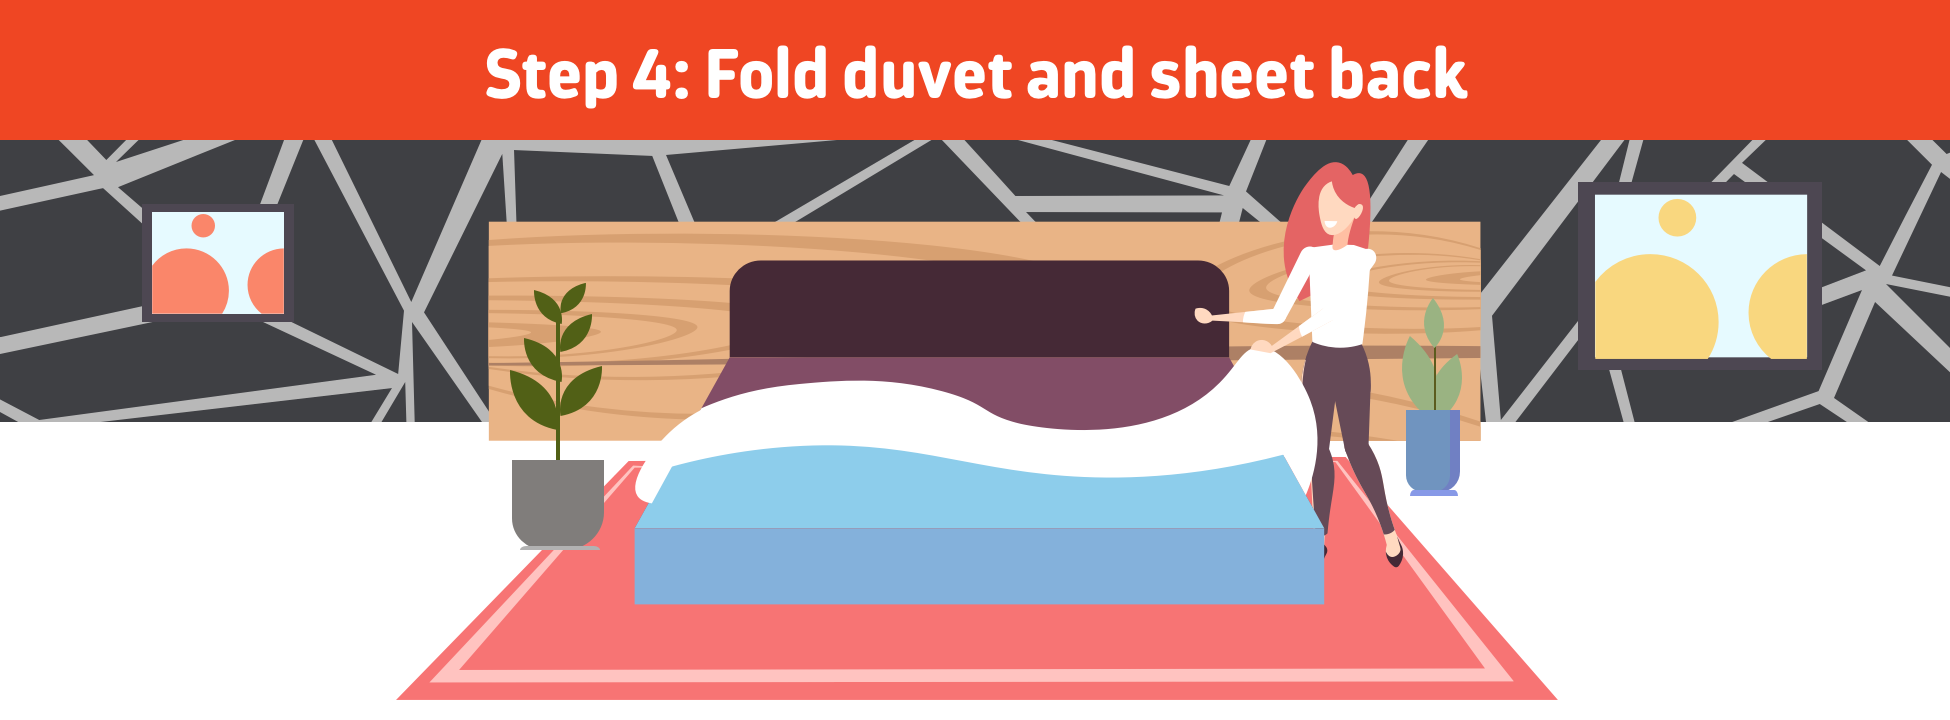 Fold duvet and sheet back